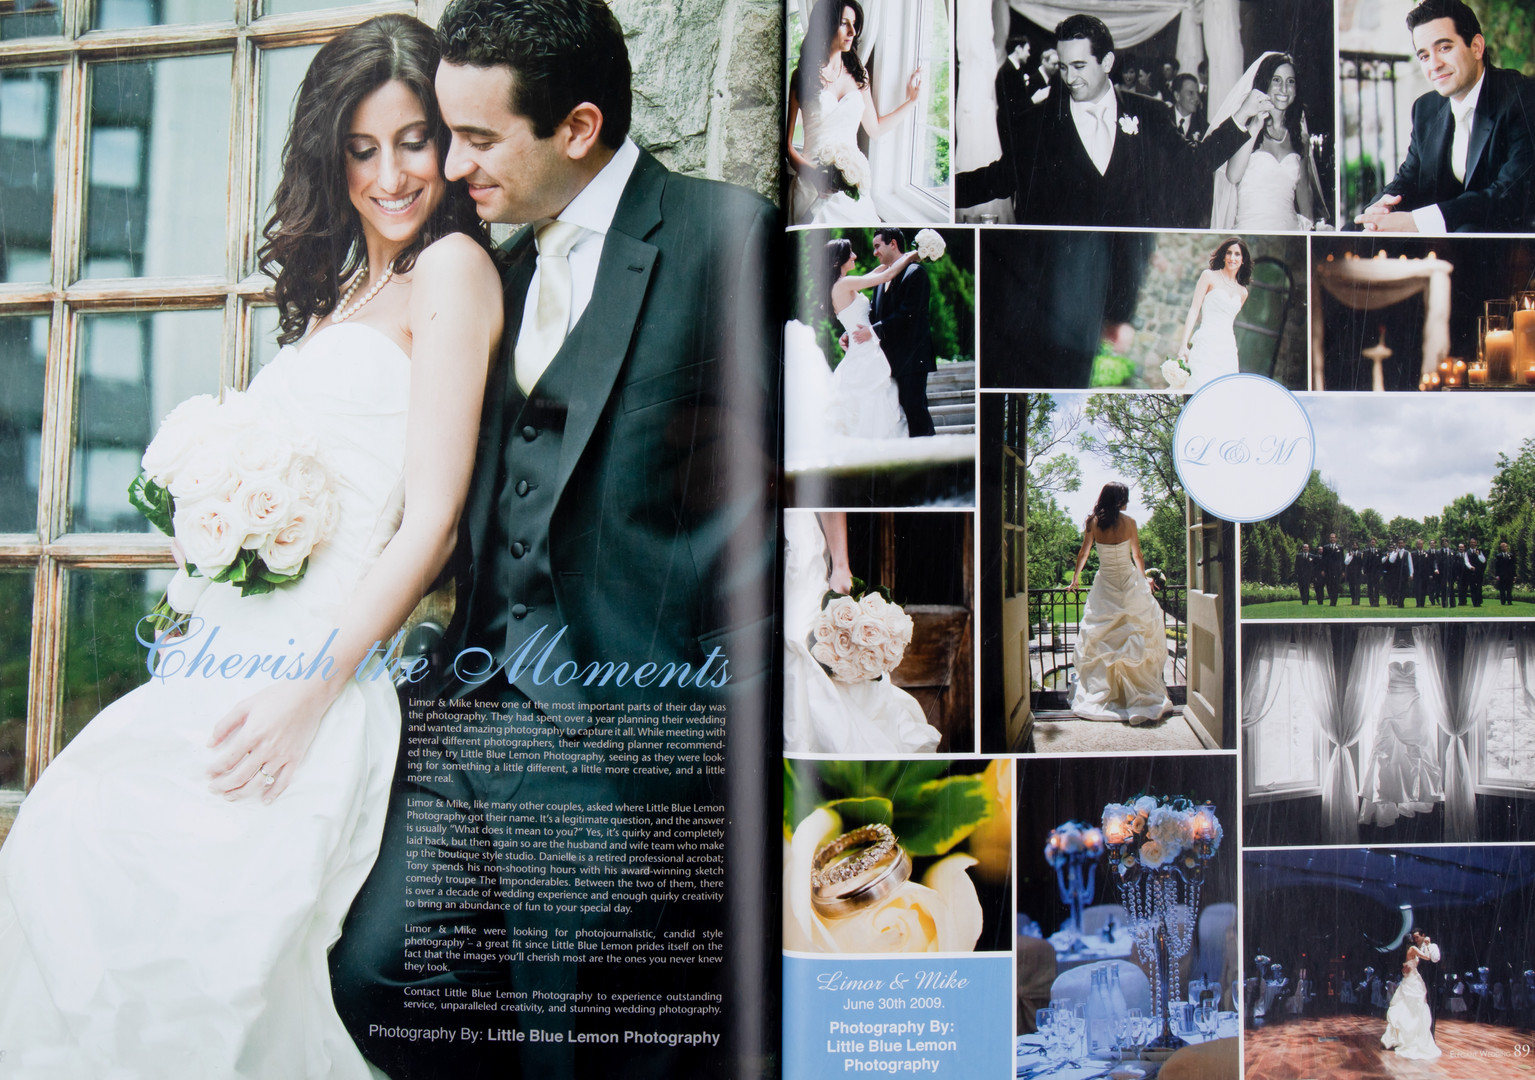 Luxury wedding published in Elegant Wedding Magazine of bride & groom at Graydon Hall & Paramount, Toronto